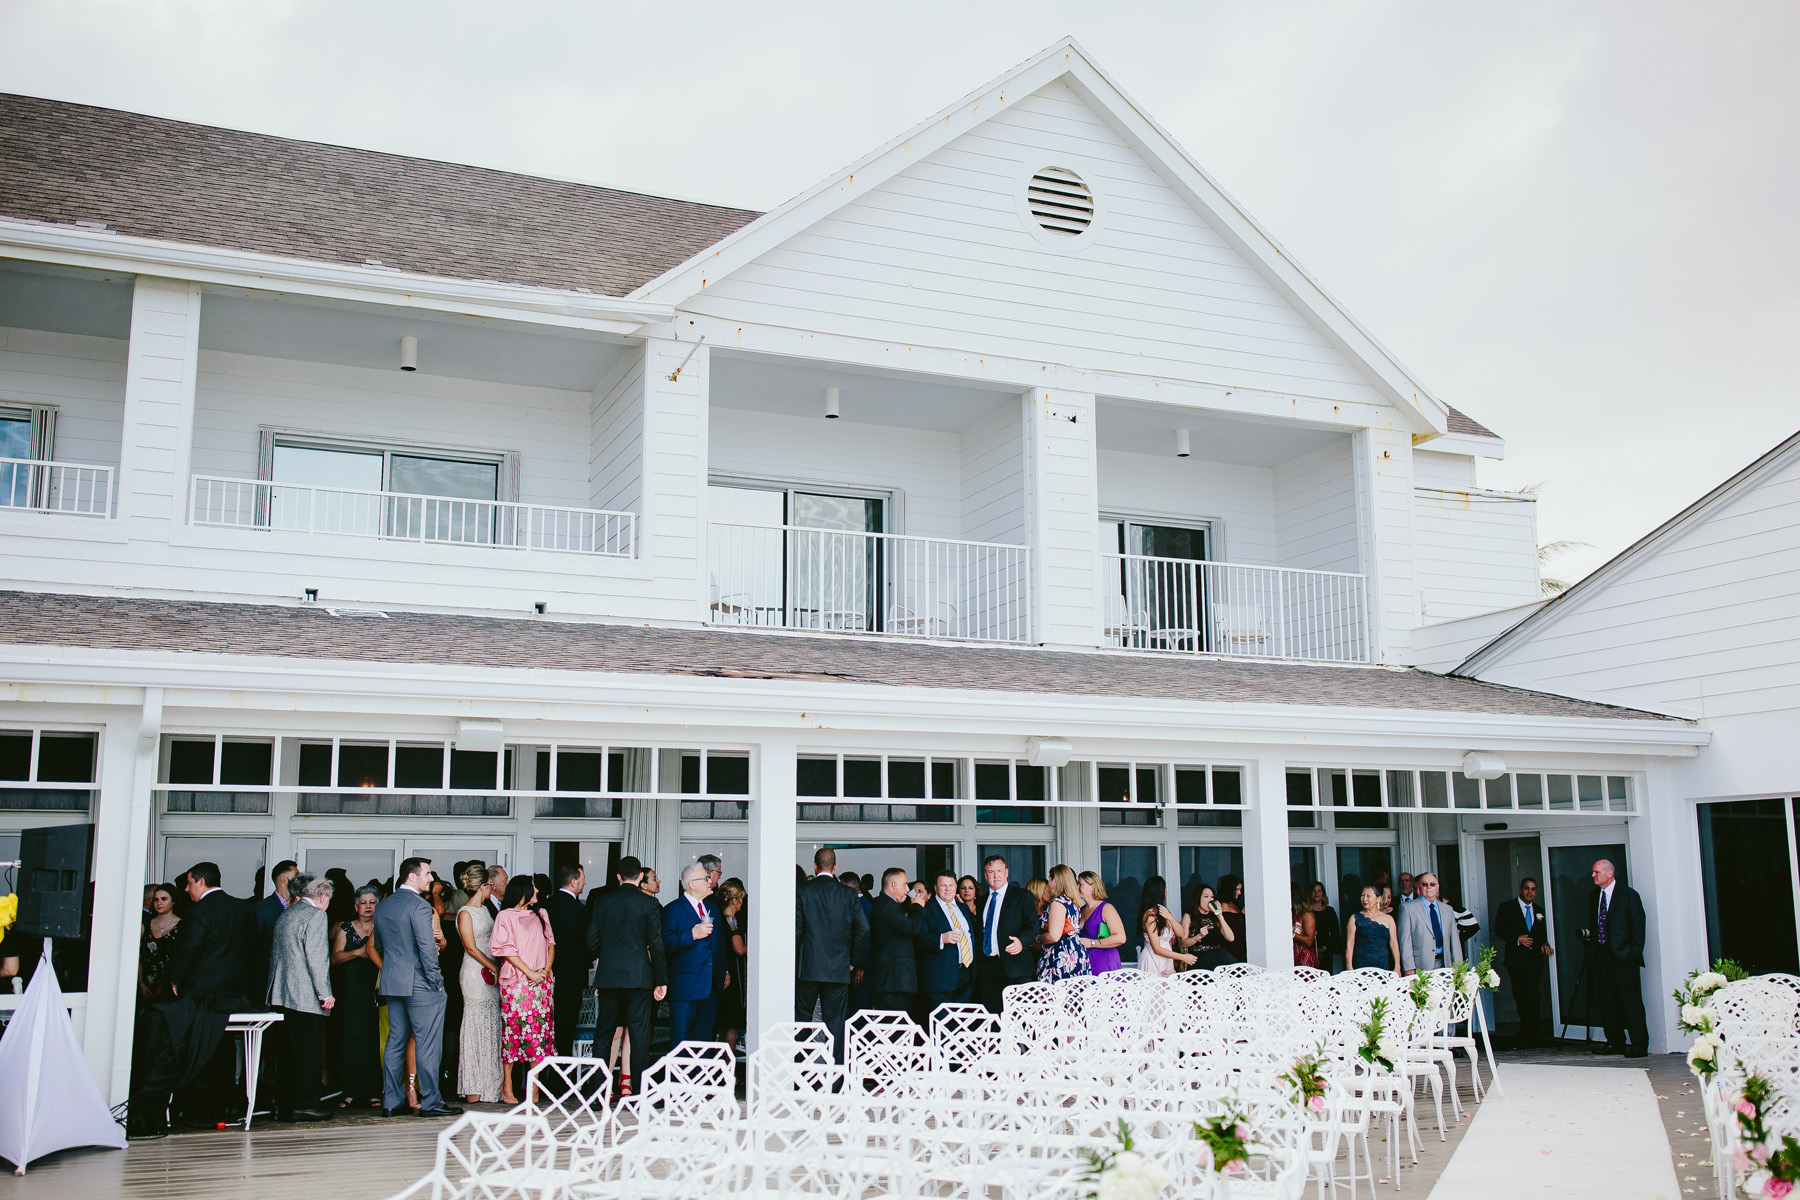 rainy-wedding-ceremony-florida-tiny-house-photo.jpg